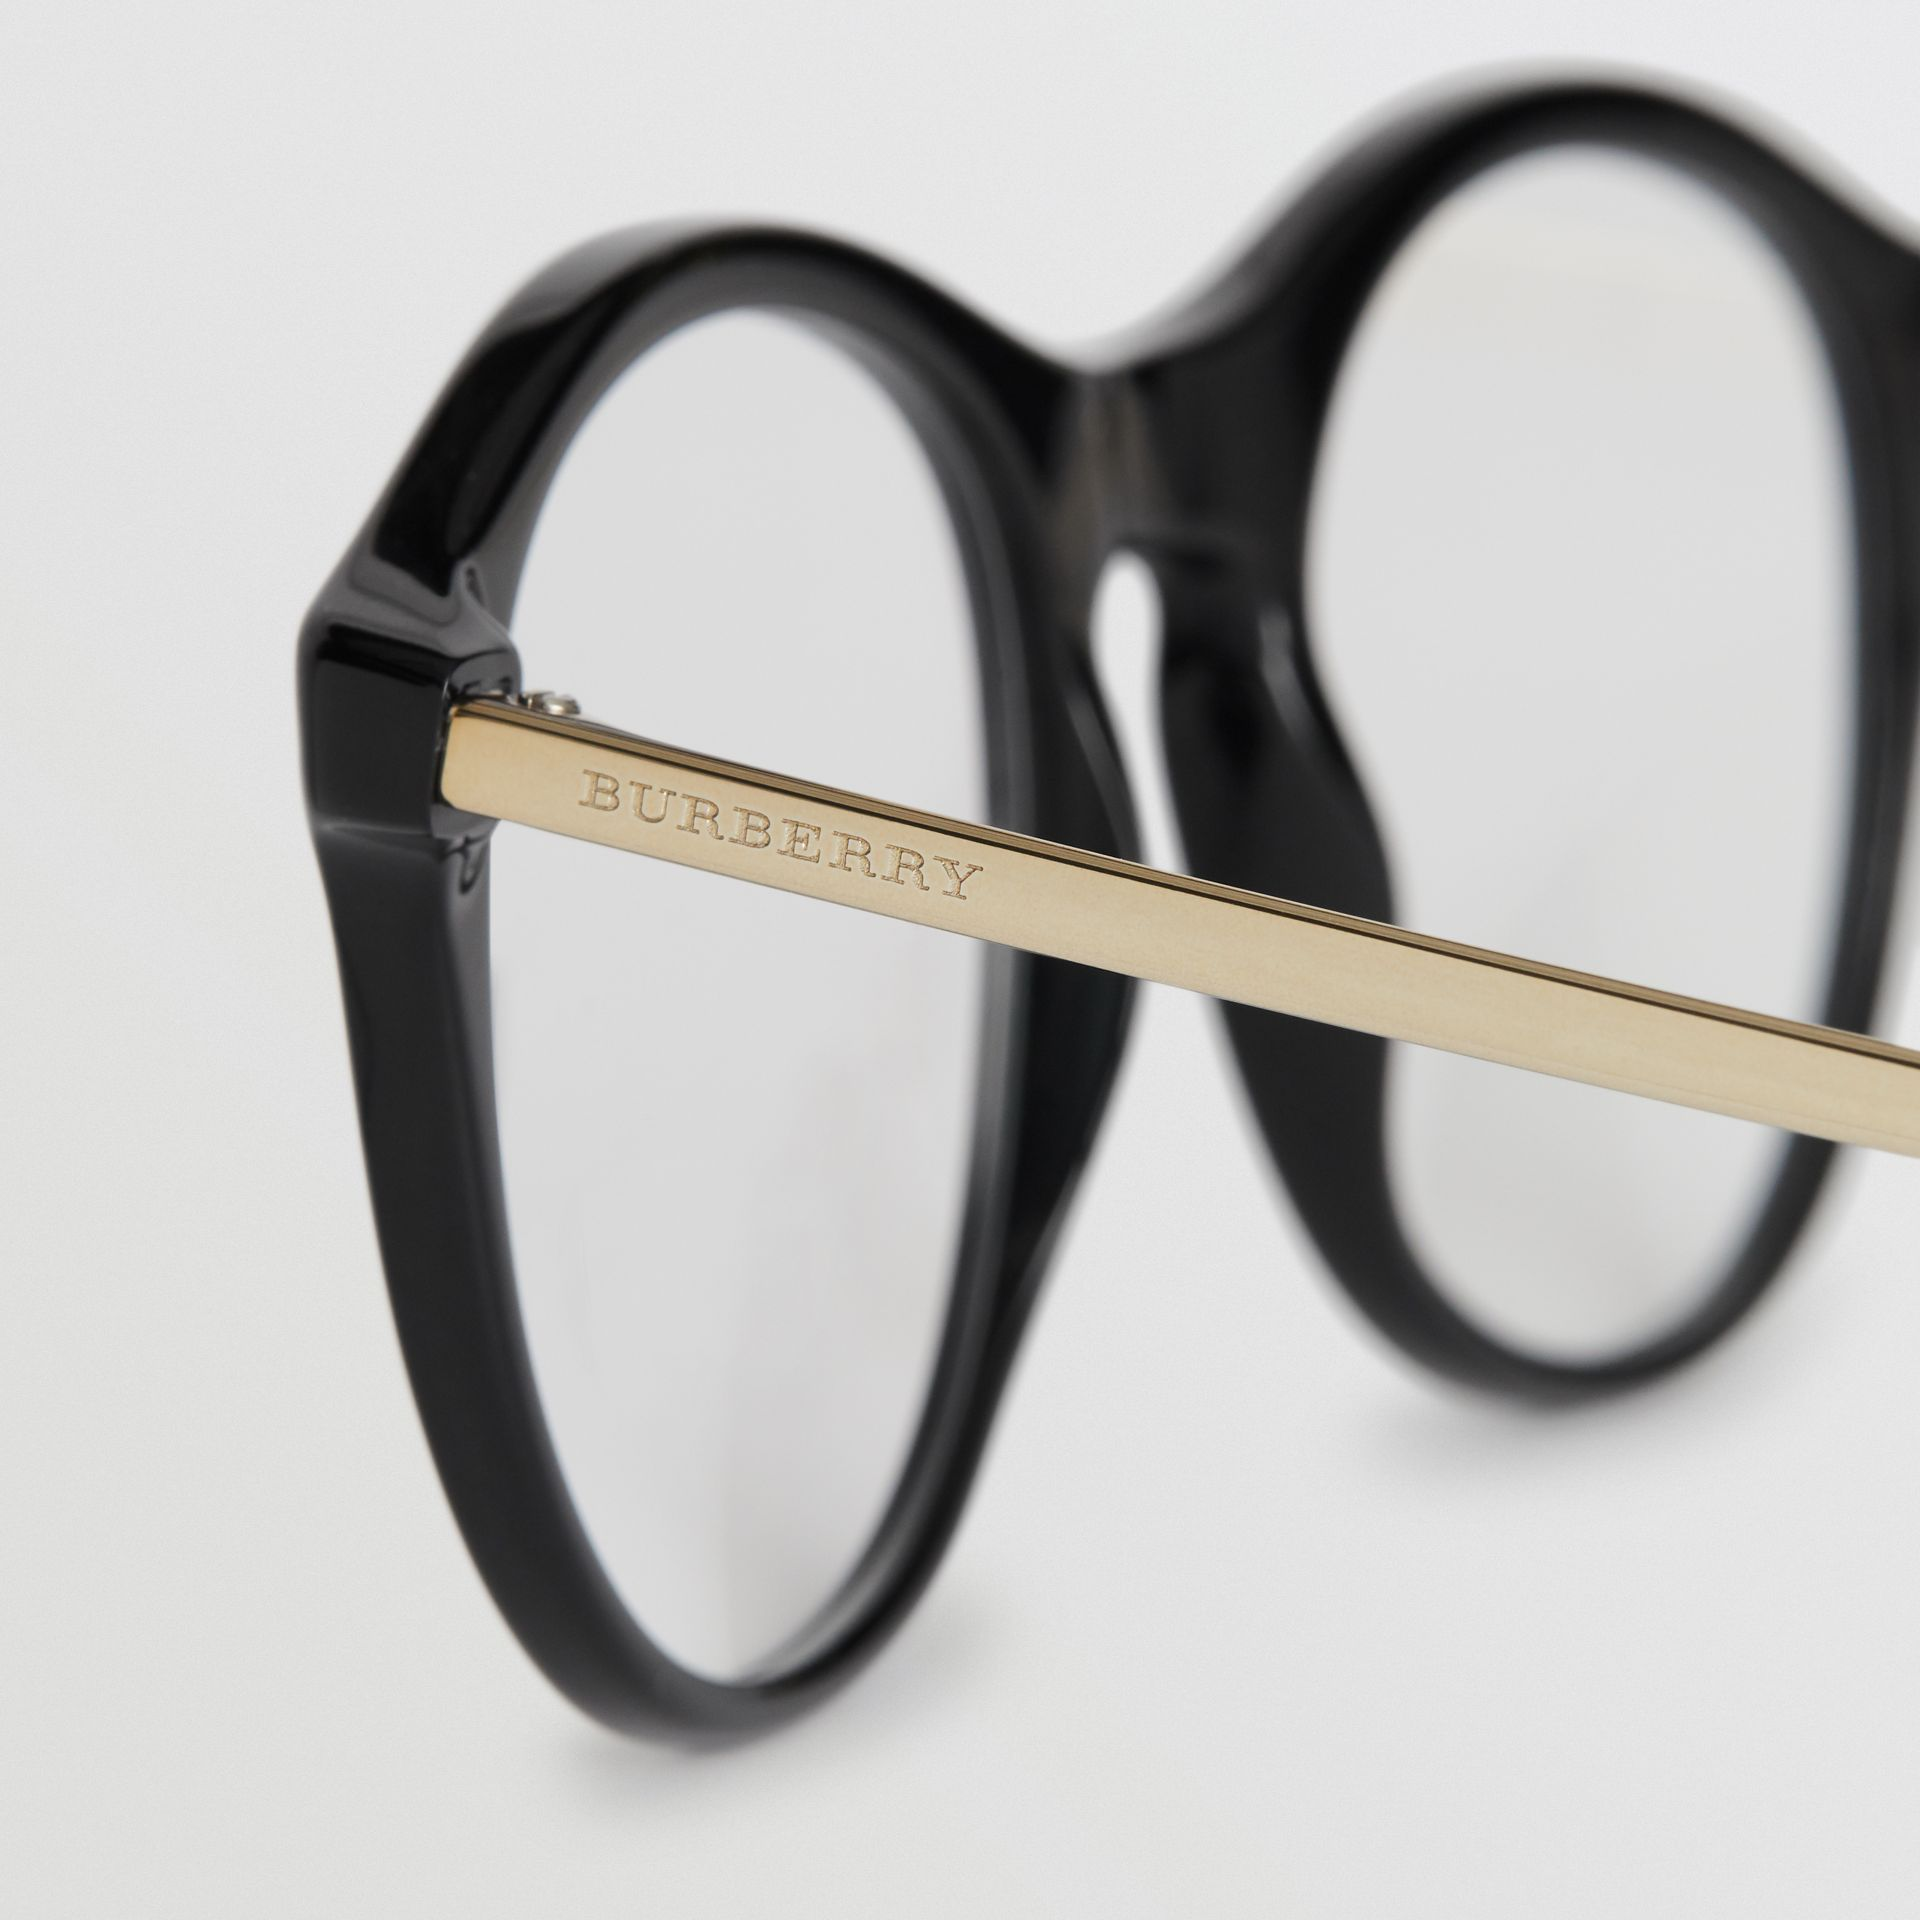 Vintage Check Detail Round Optical Frames in Black - Women | Burberry - gallery image 1